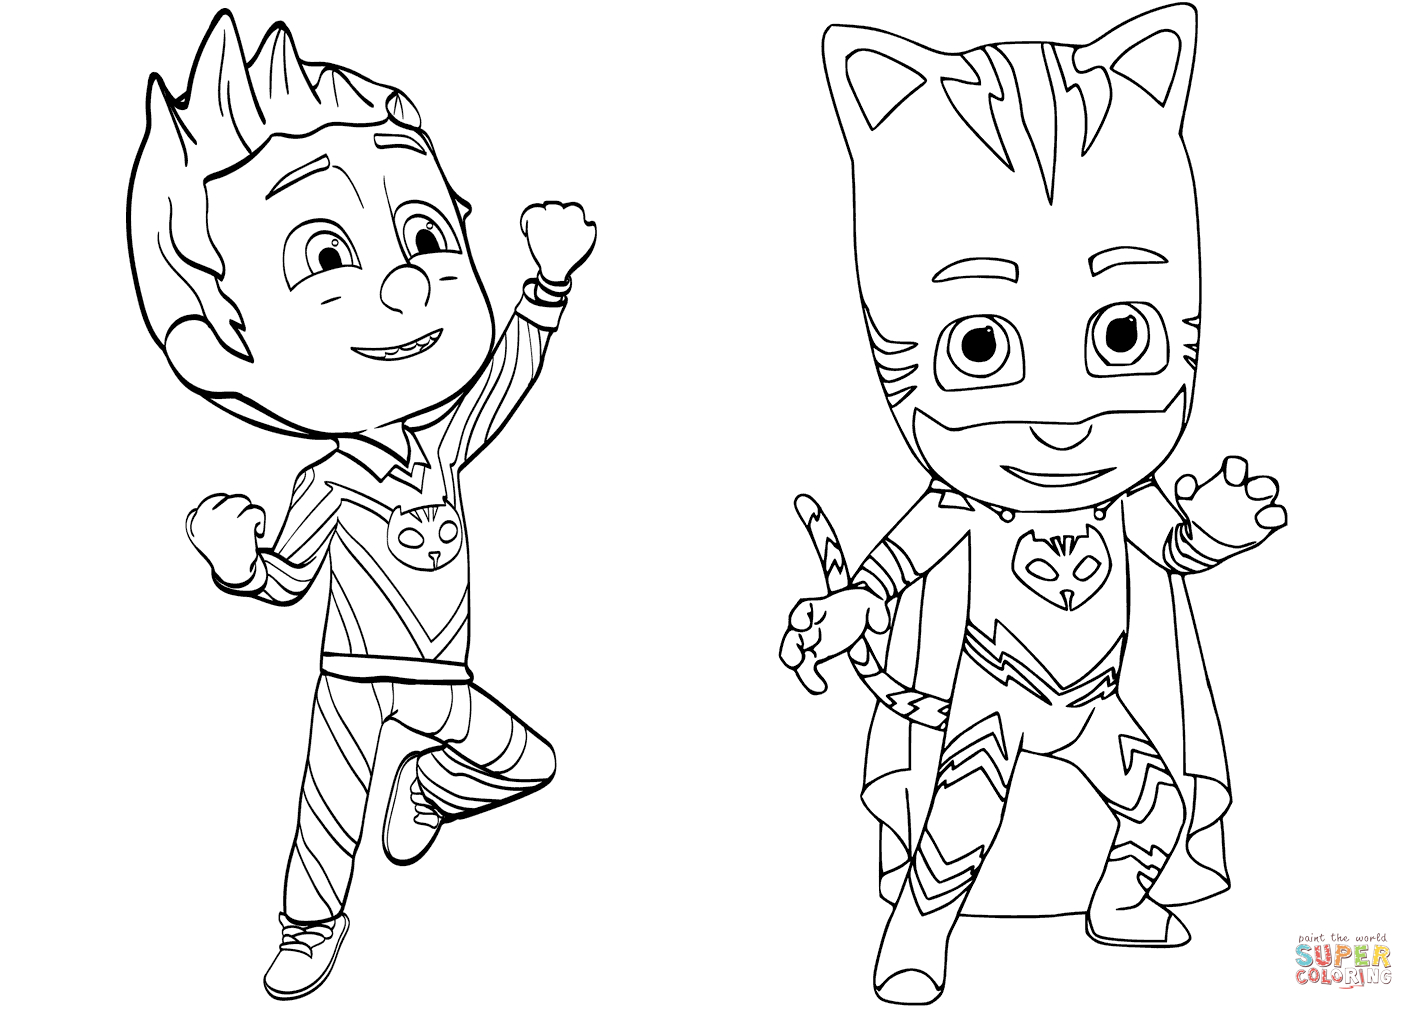 Pajama Hero Connor Is Catboy From Pj Masks Coloring Page | Free - Free Printable Pajama Coloring Pages